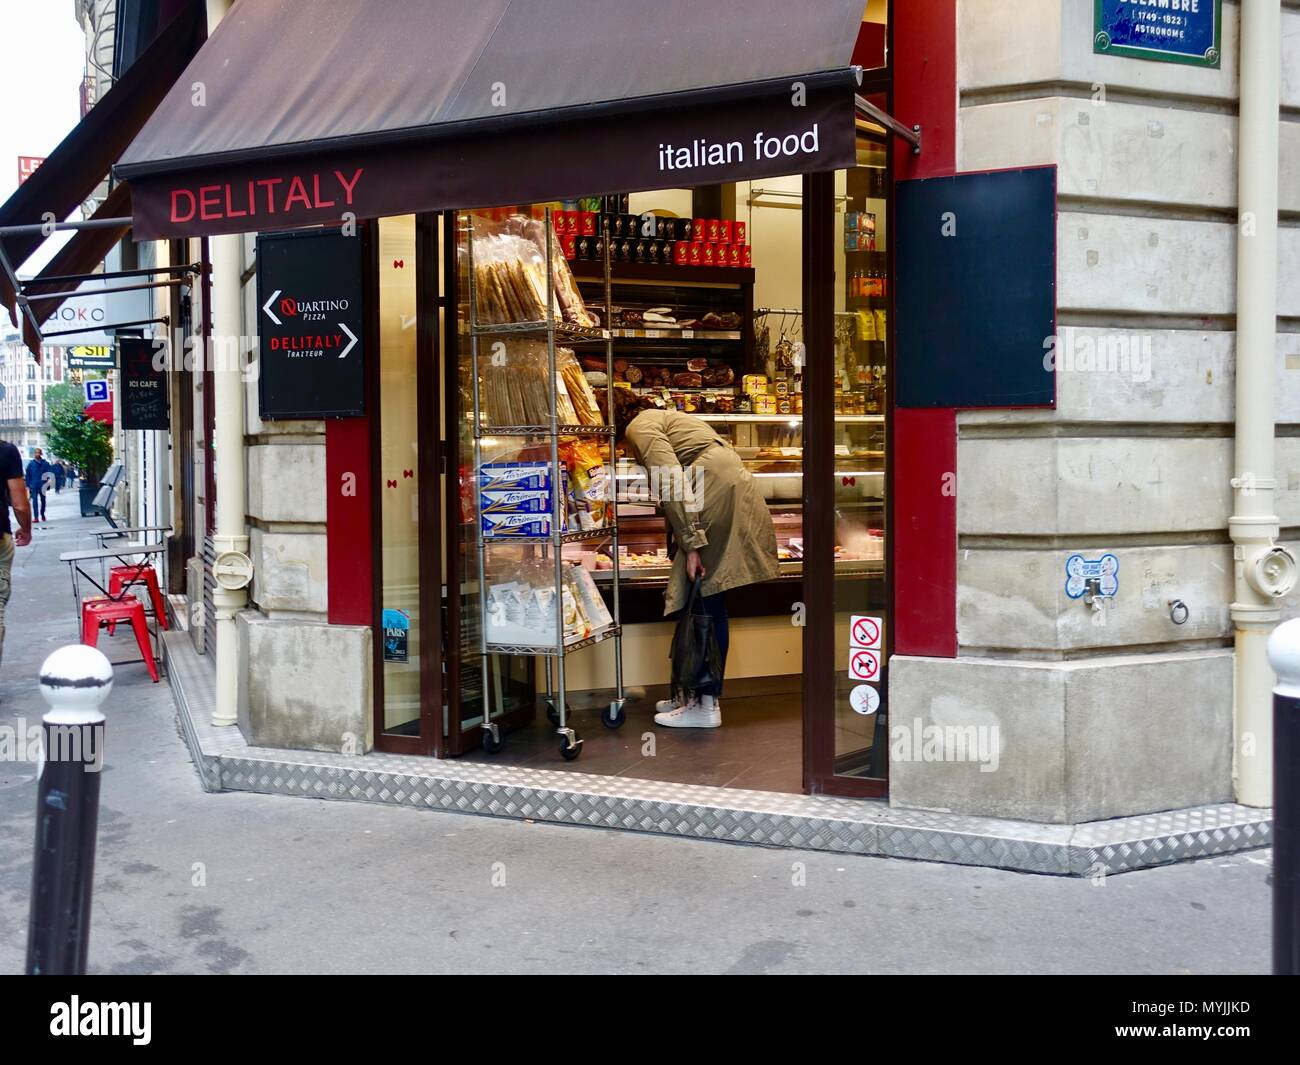 Woman wearing trench coat and white tennis shoes shopping in Deli Italy, an Italian food market in Montparnasse, Paris, France - Stock Image